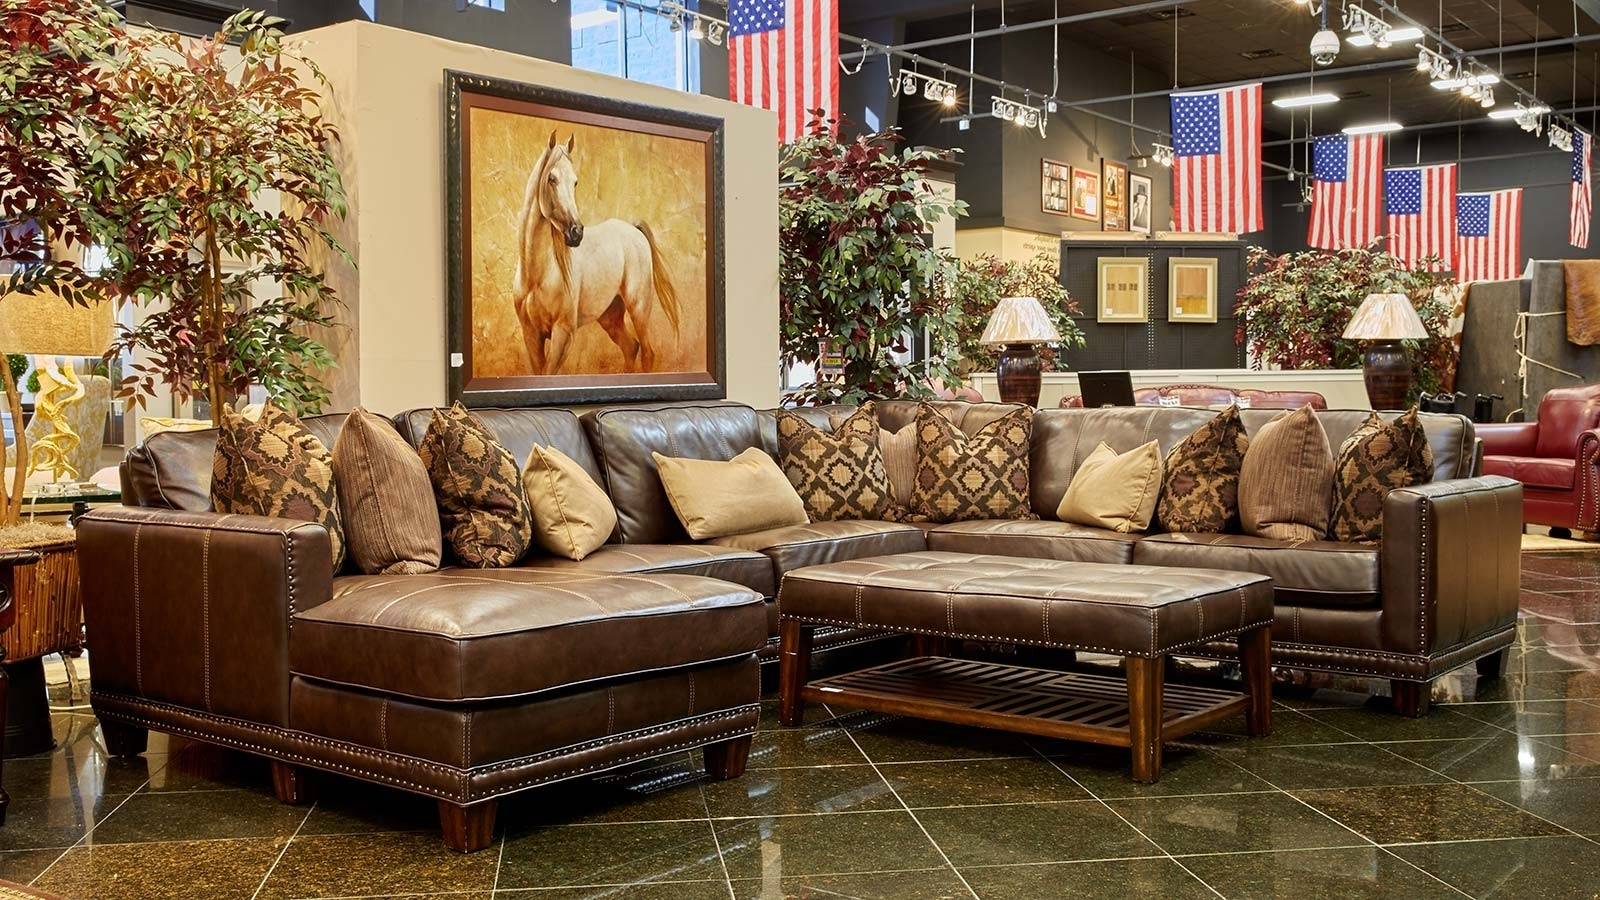 Gallery Furniture Intended For Royal Furniture Sectional Sofas (View 4 of 20)